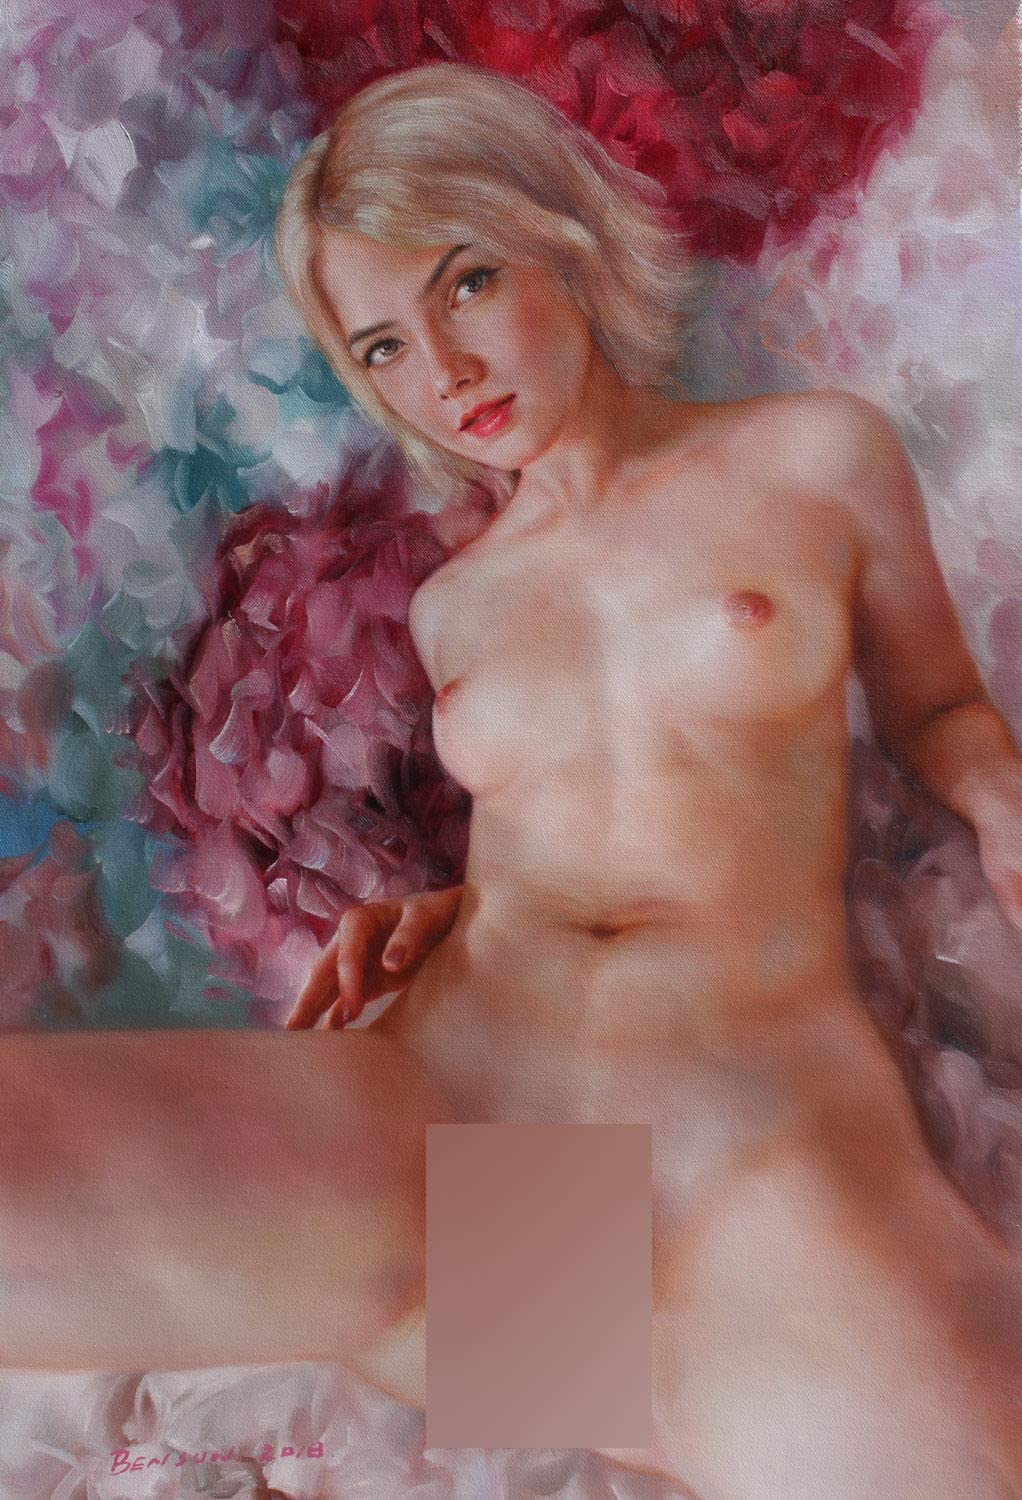 Nude girl art prints canvas transfer from original oil painting charming nude girl beauty lady female nude for home wall Decor